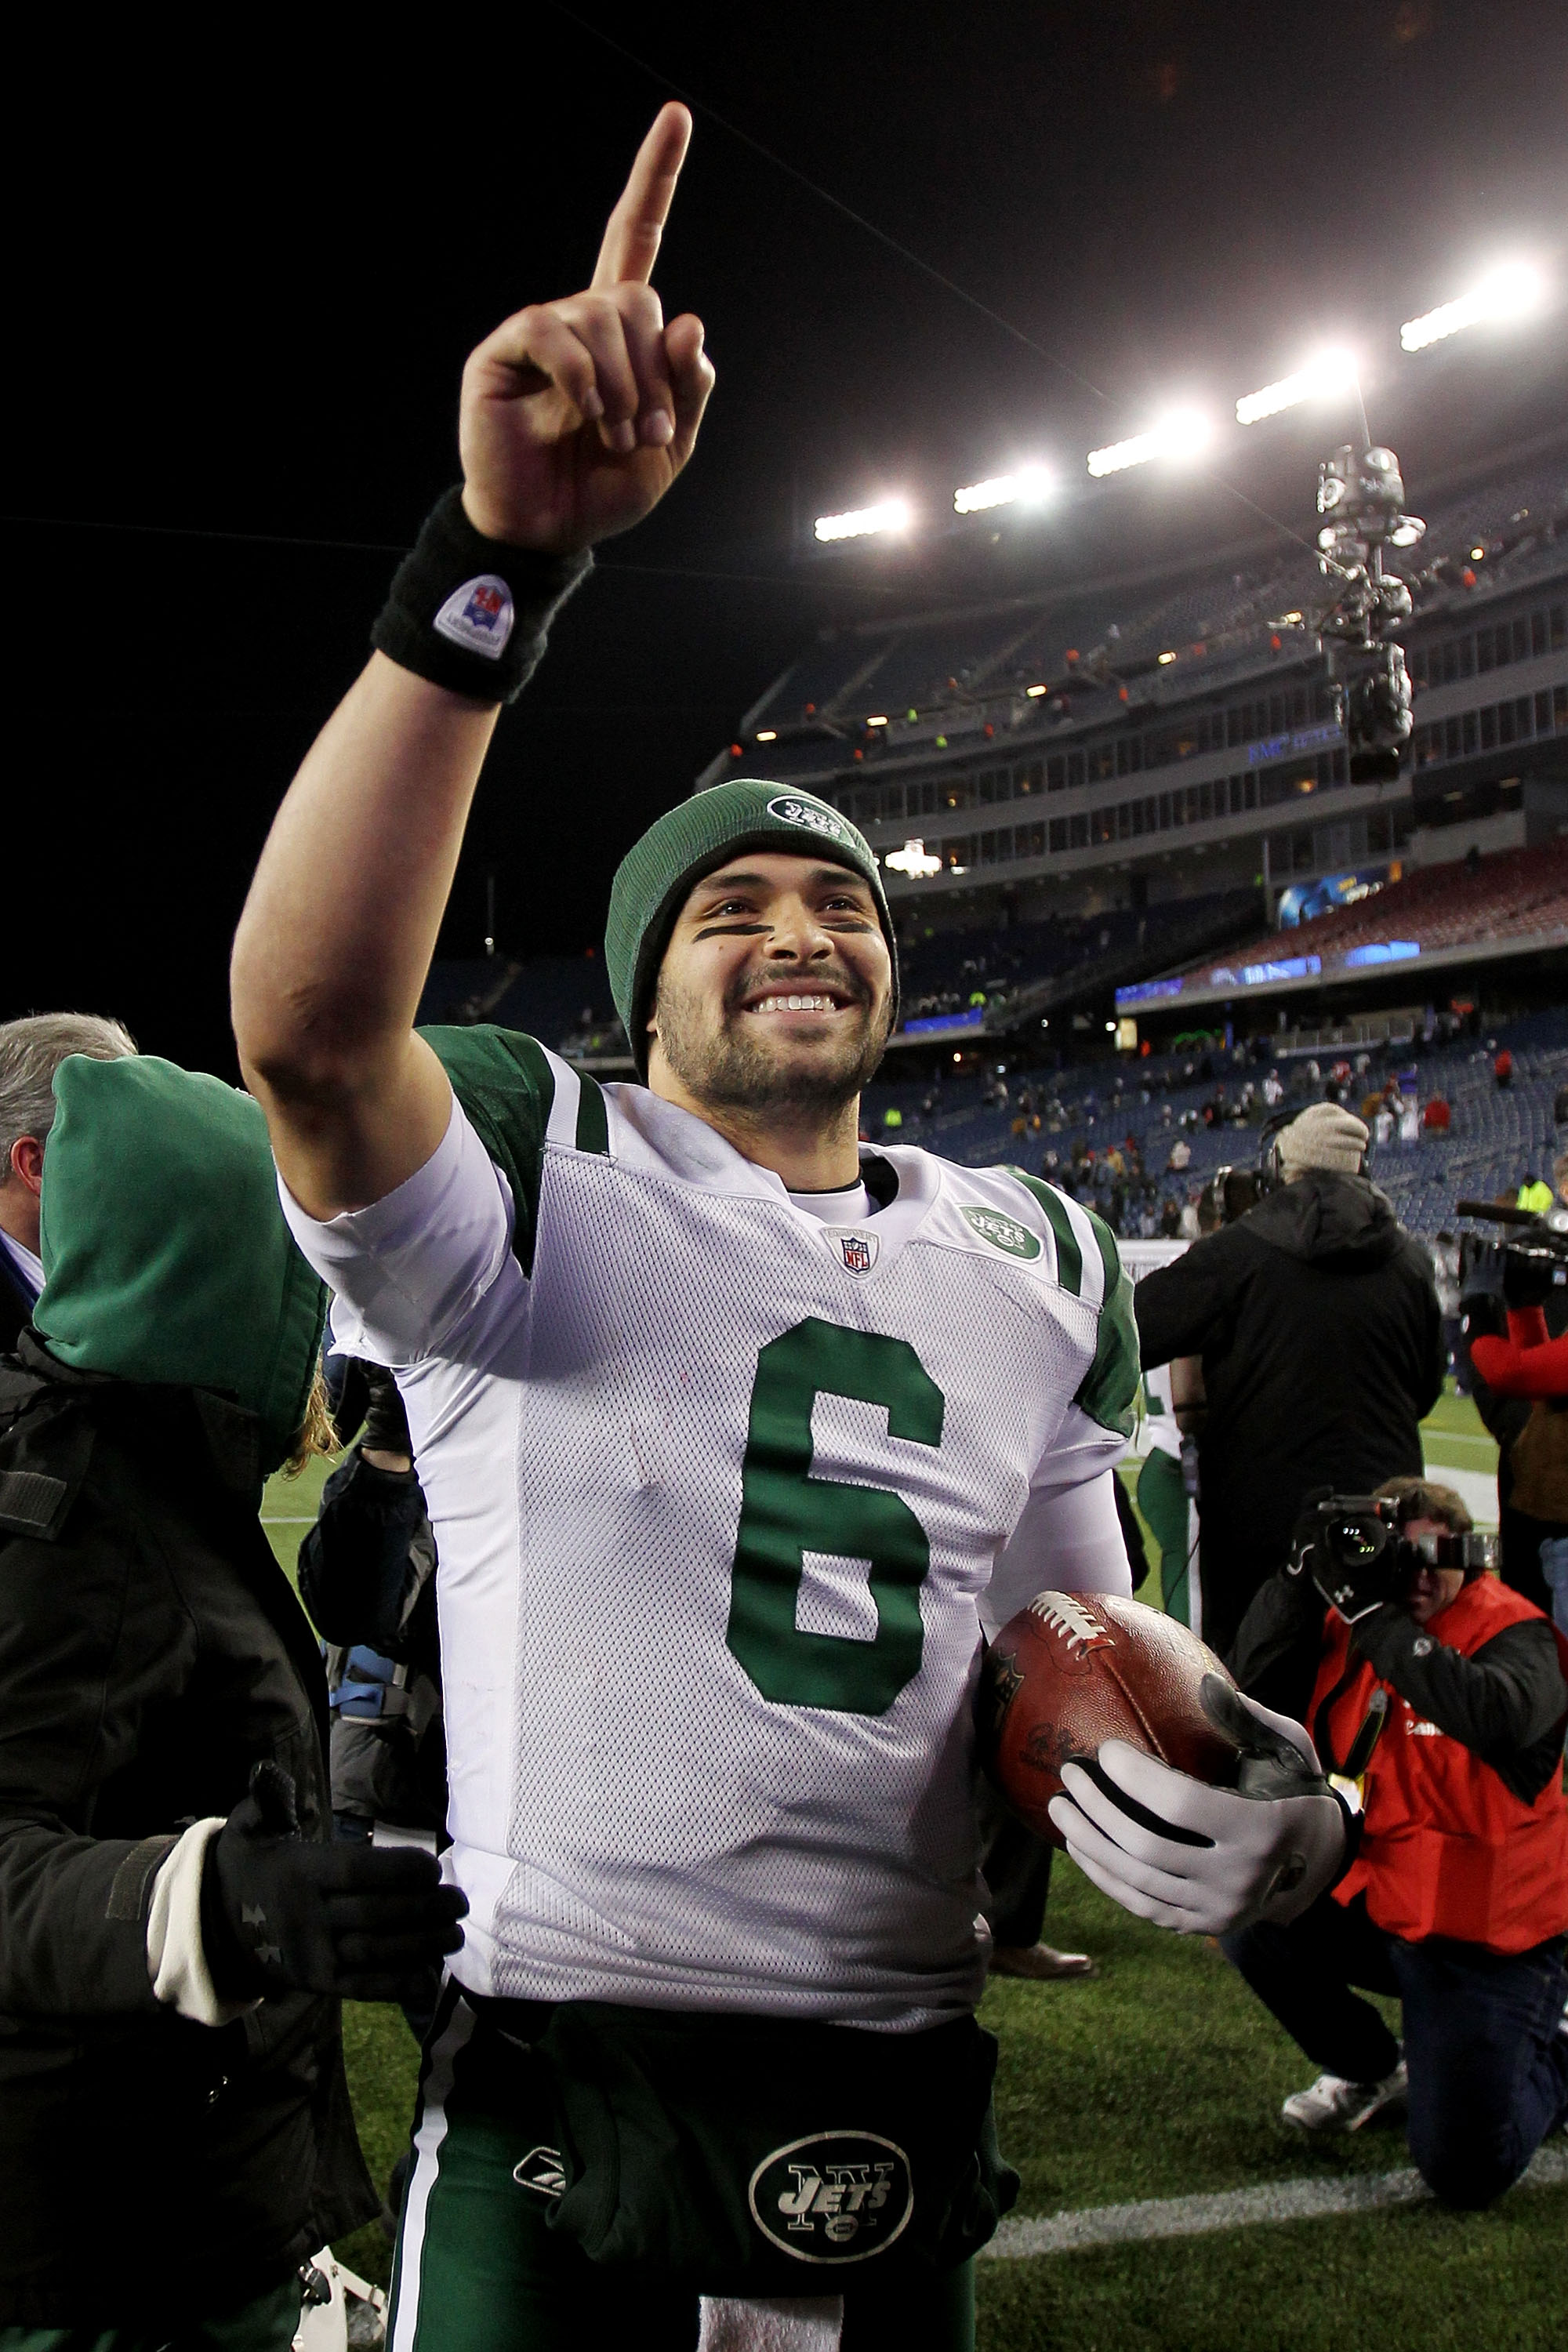 Mark Sanchez has already led the Jets to their best season since realignment.